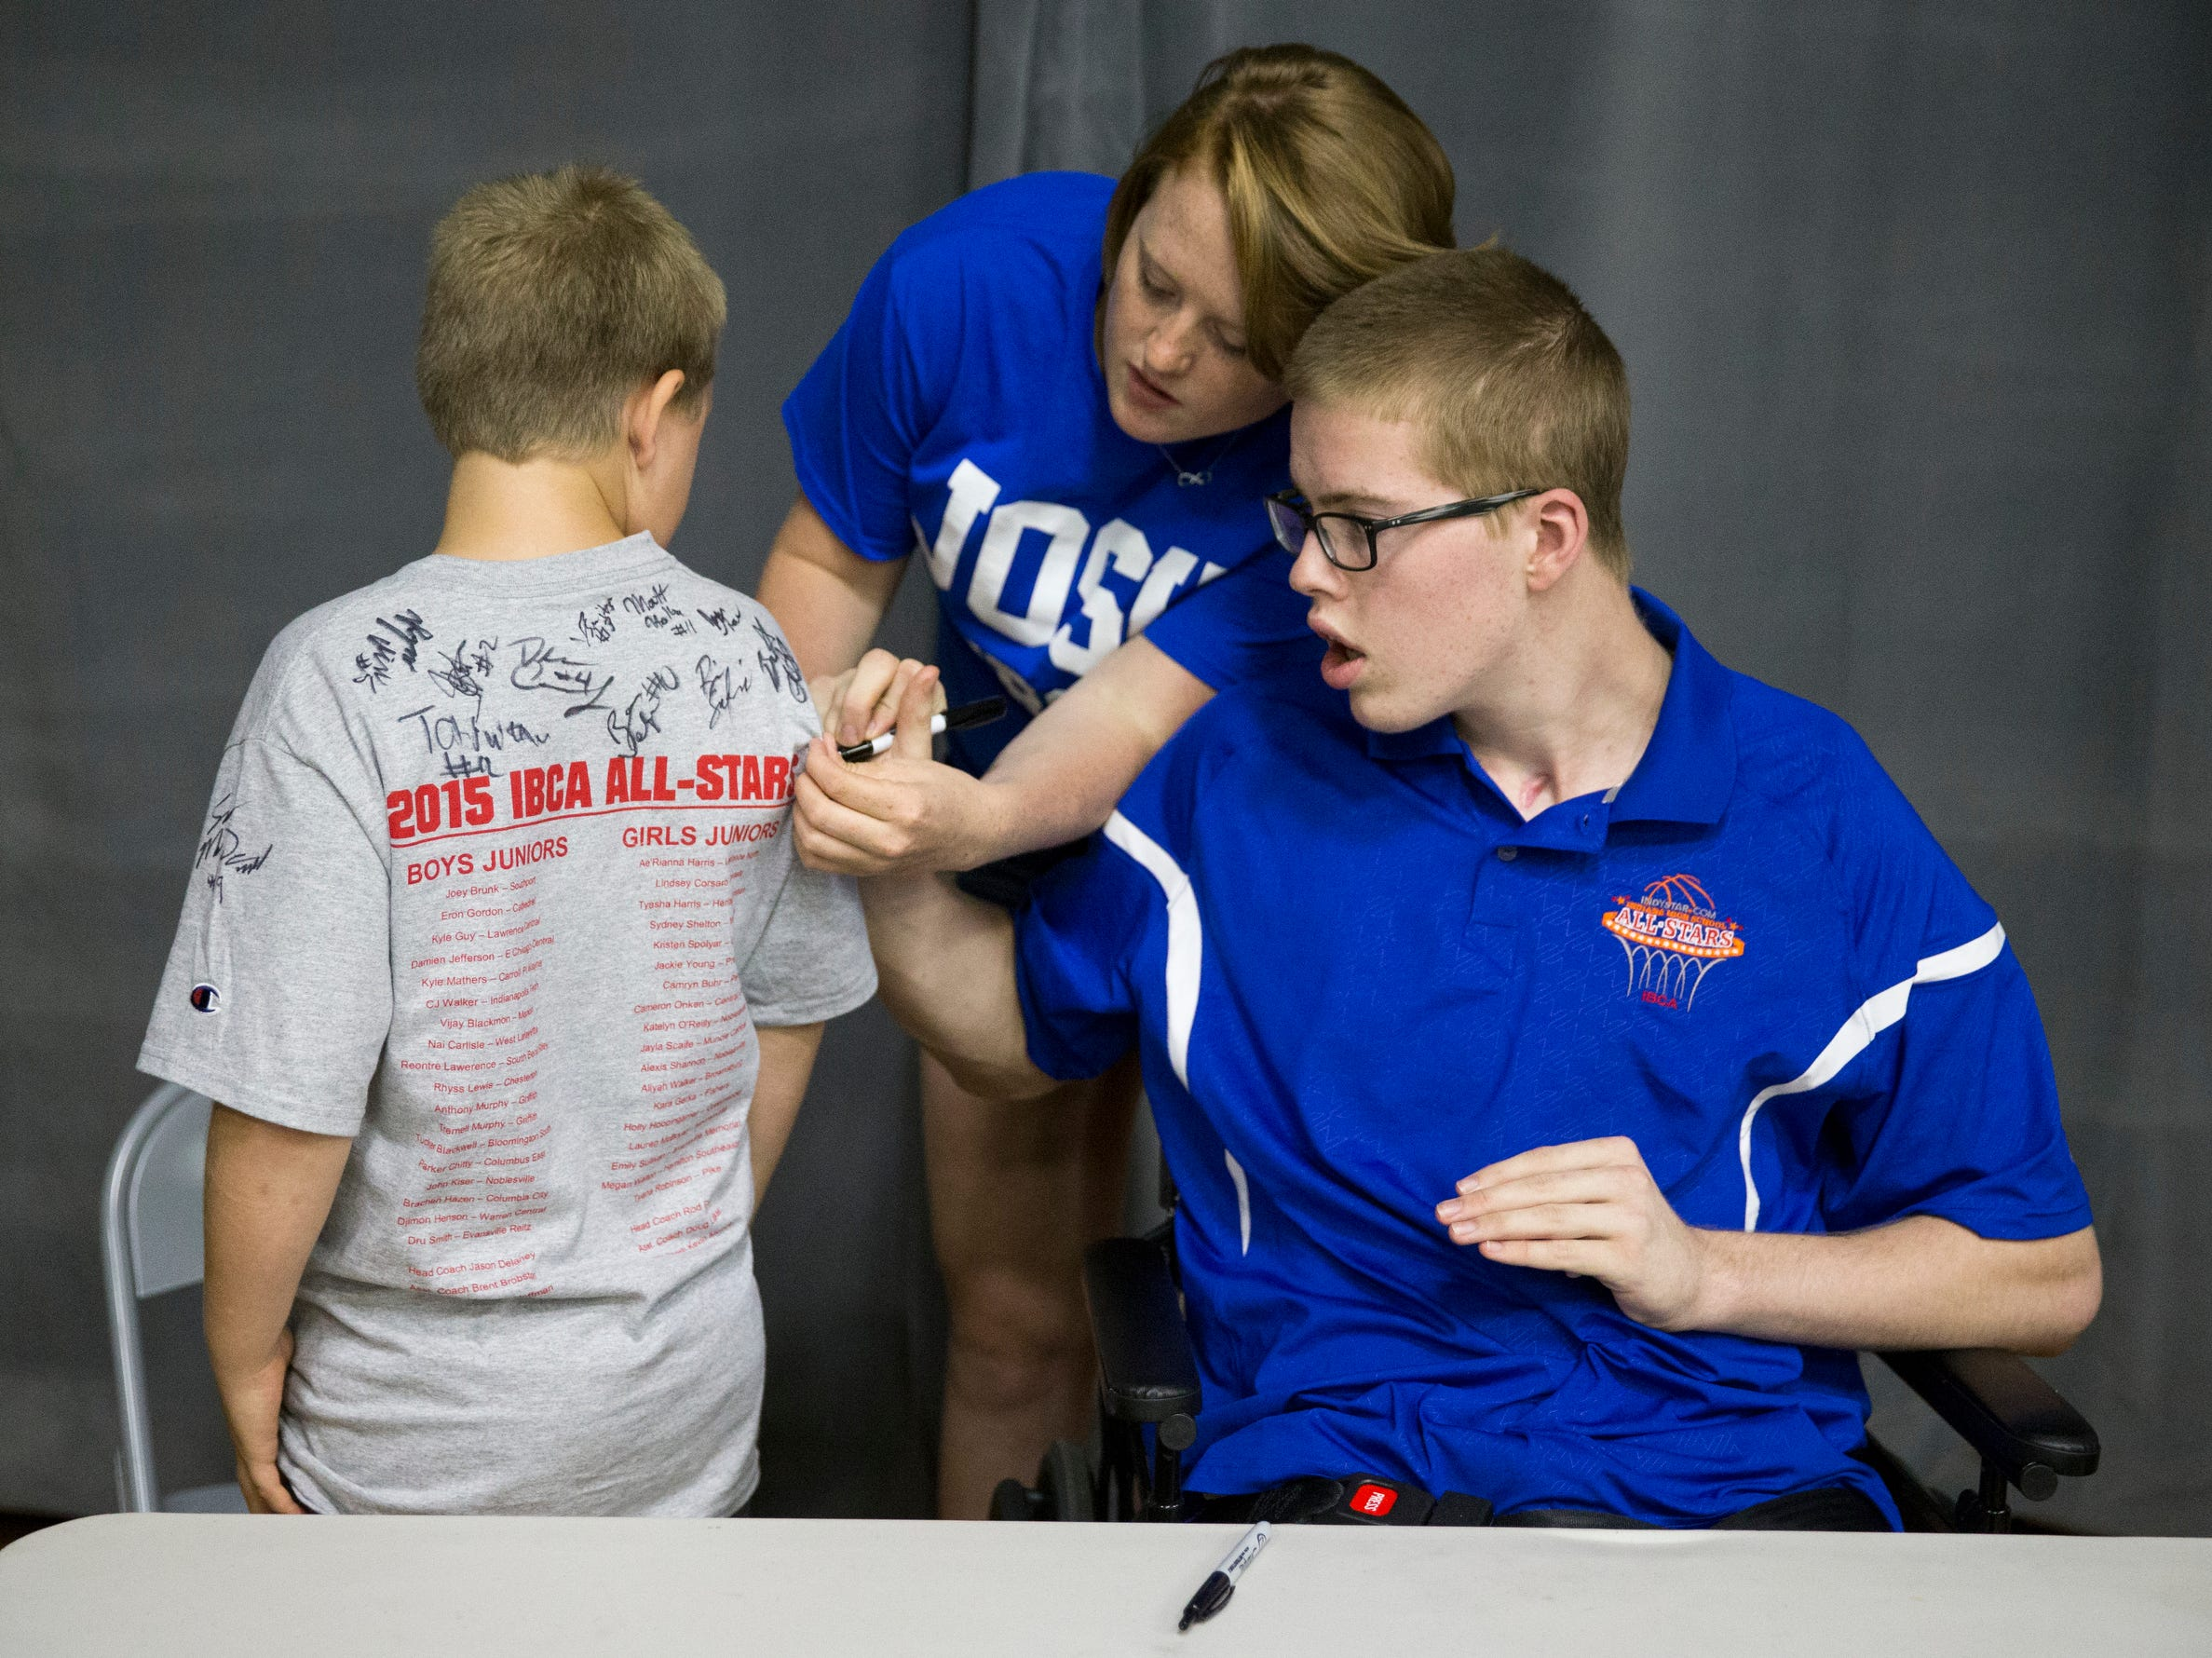 Josh Speidel, a seriously injured player for Columbus North High School, gets help from his sister Micayla Speidel, as they sign the shirt of Elix Preson, 10, Brownstown, as Speidel and other members of the Indiana Basketball All-Stars sign autographs before action against the Indiana juniors, Columbus North High School, June 10, 2015.